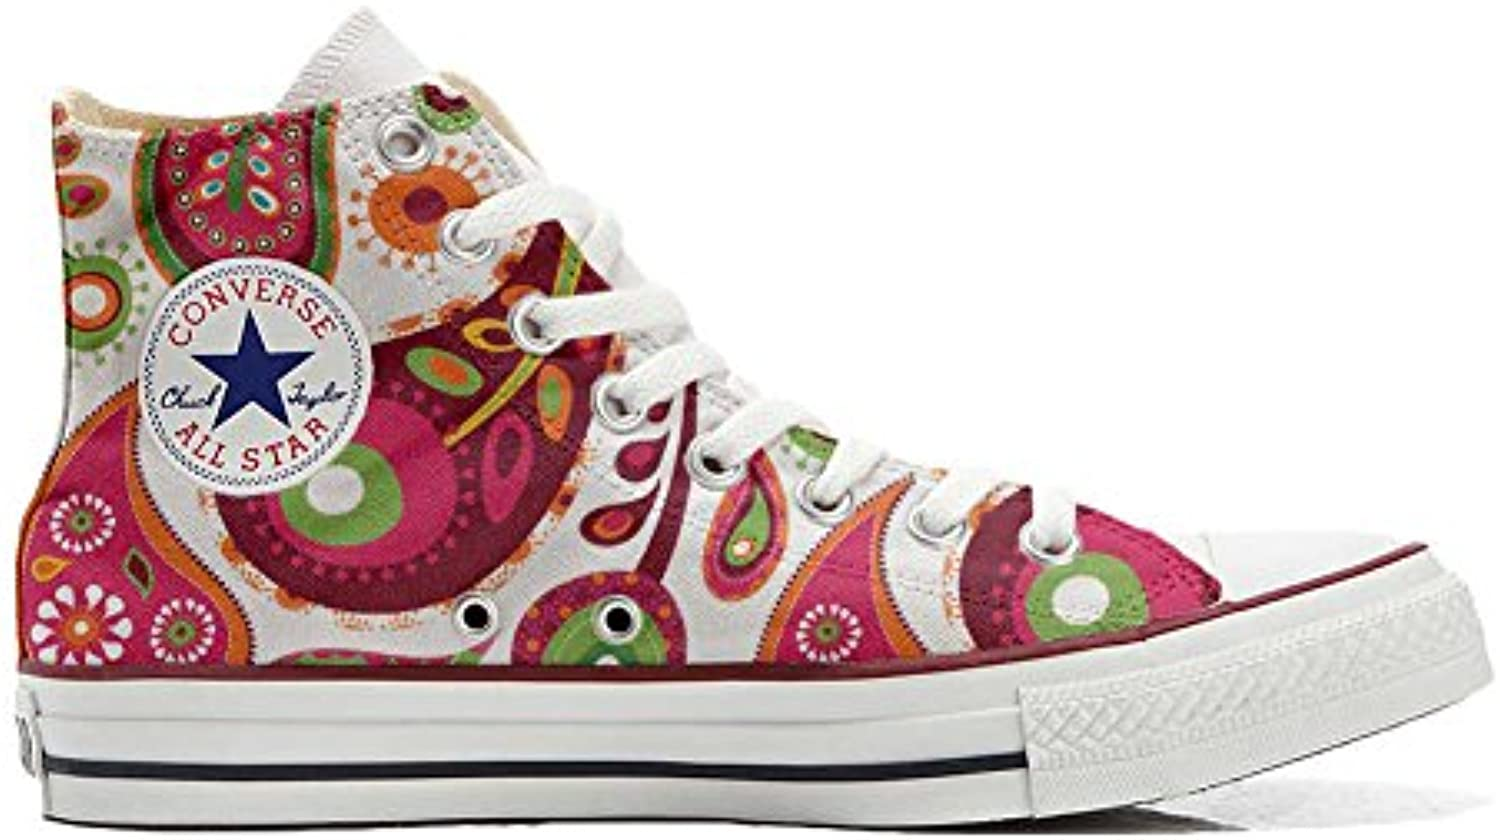 Converse All Star Hi Customized personalisierte Schuhe (Handwerk Schuhe) White Green Paisley 2